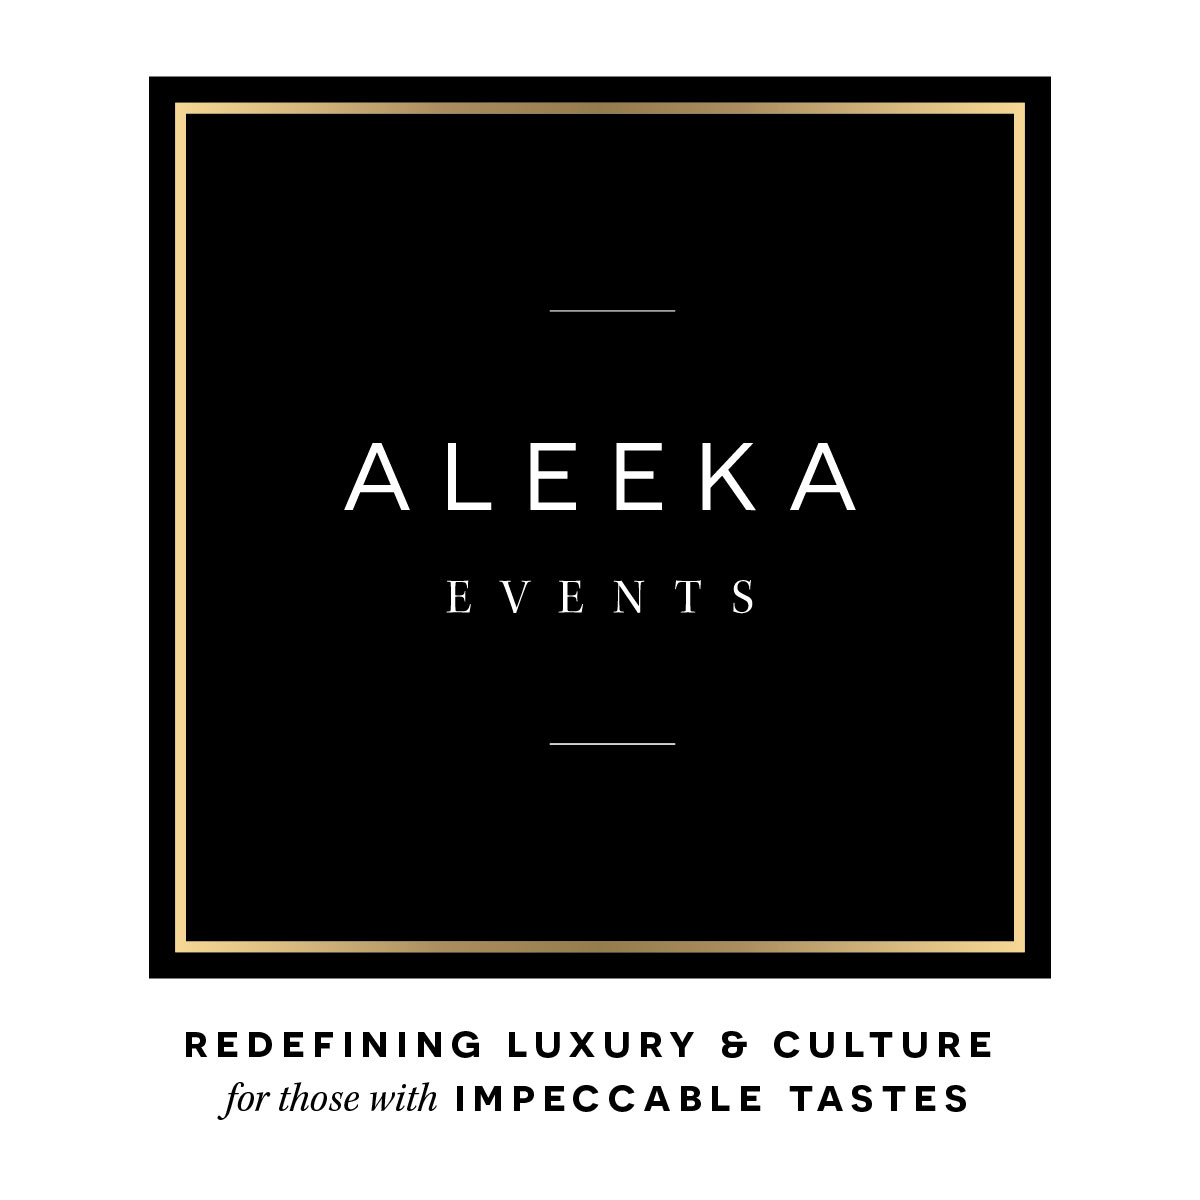 Aleeka Events - Behind the name | Aleeka Events | Wedding and Event Planner & Stylist | UK and London | http://aleekaevents.co.uk/blog/2016/8/1/aleeka-events-behind-the-name